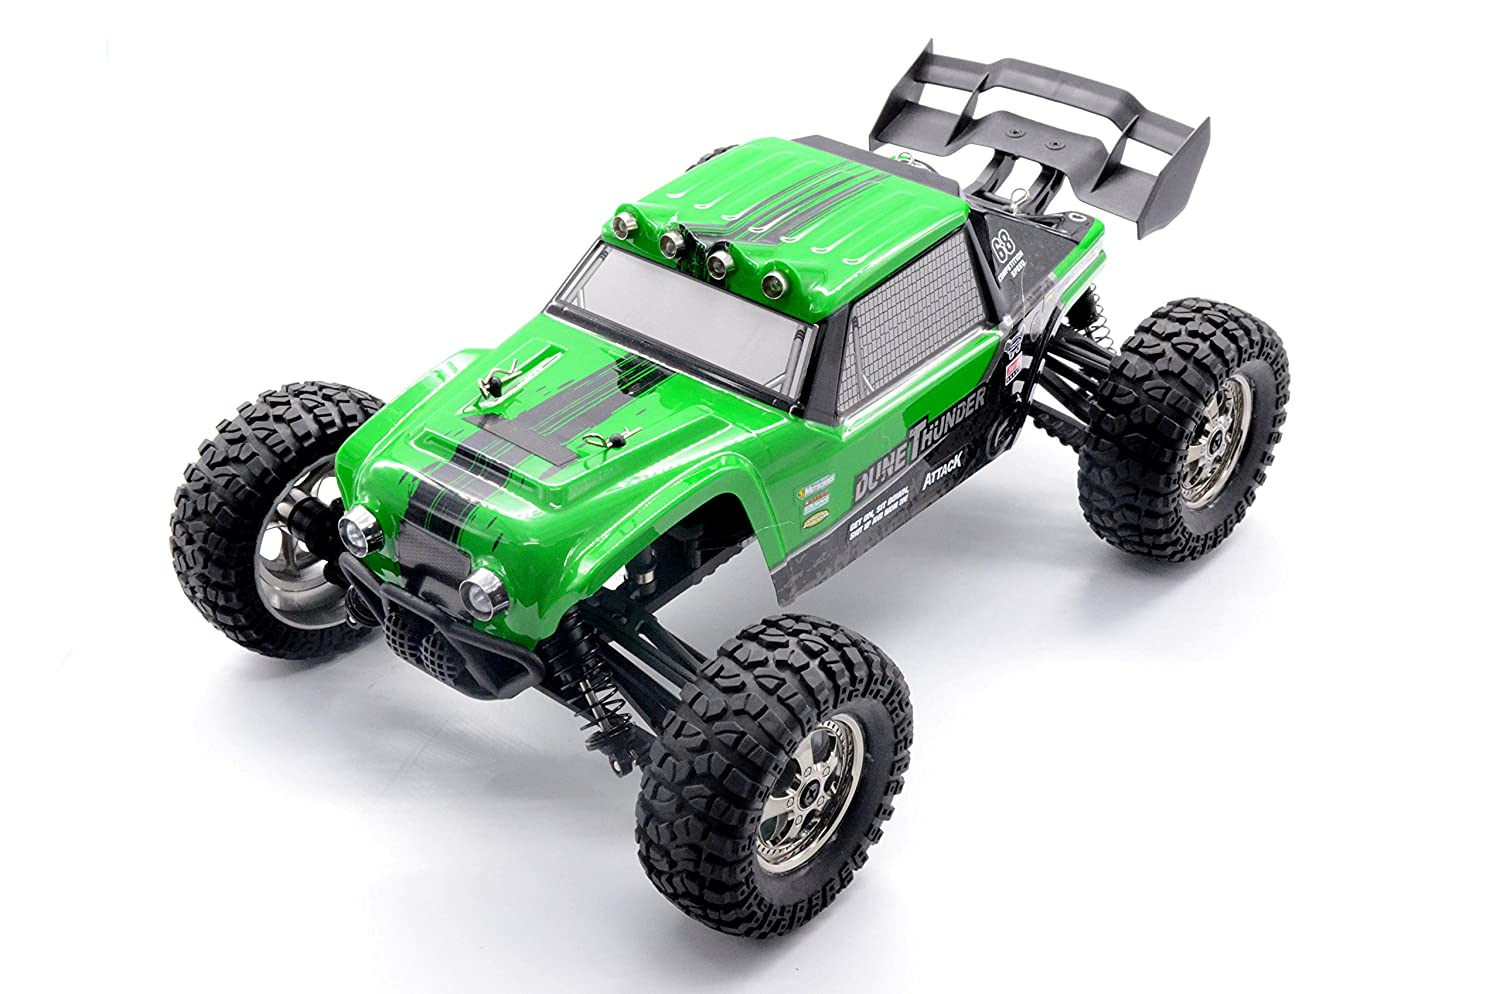 KELIWOW 2.4Ghz 1/12 Scale 25MPH Waterproof RC Car, 4WD Desert Off-Road RC Truck with LED Lights - Green